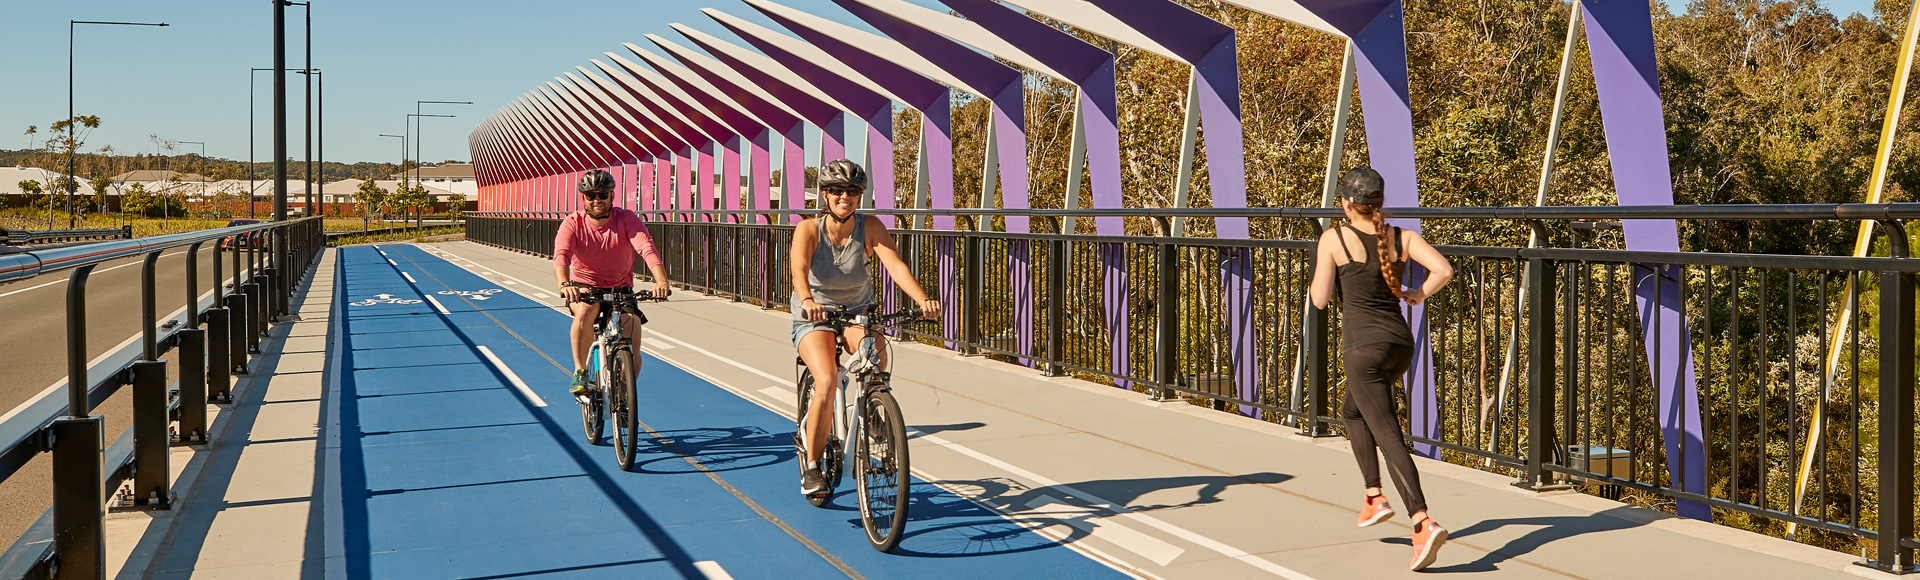 The cycleway at Stockland's Aura community on the Sunshine Coast (Qld)